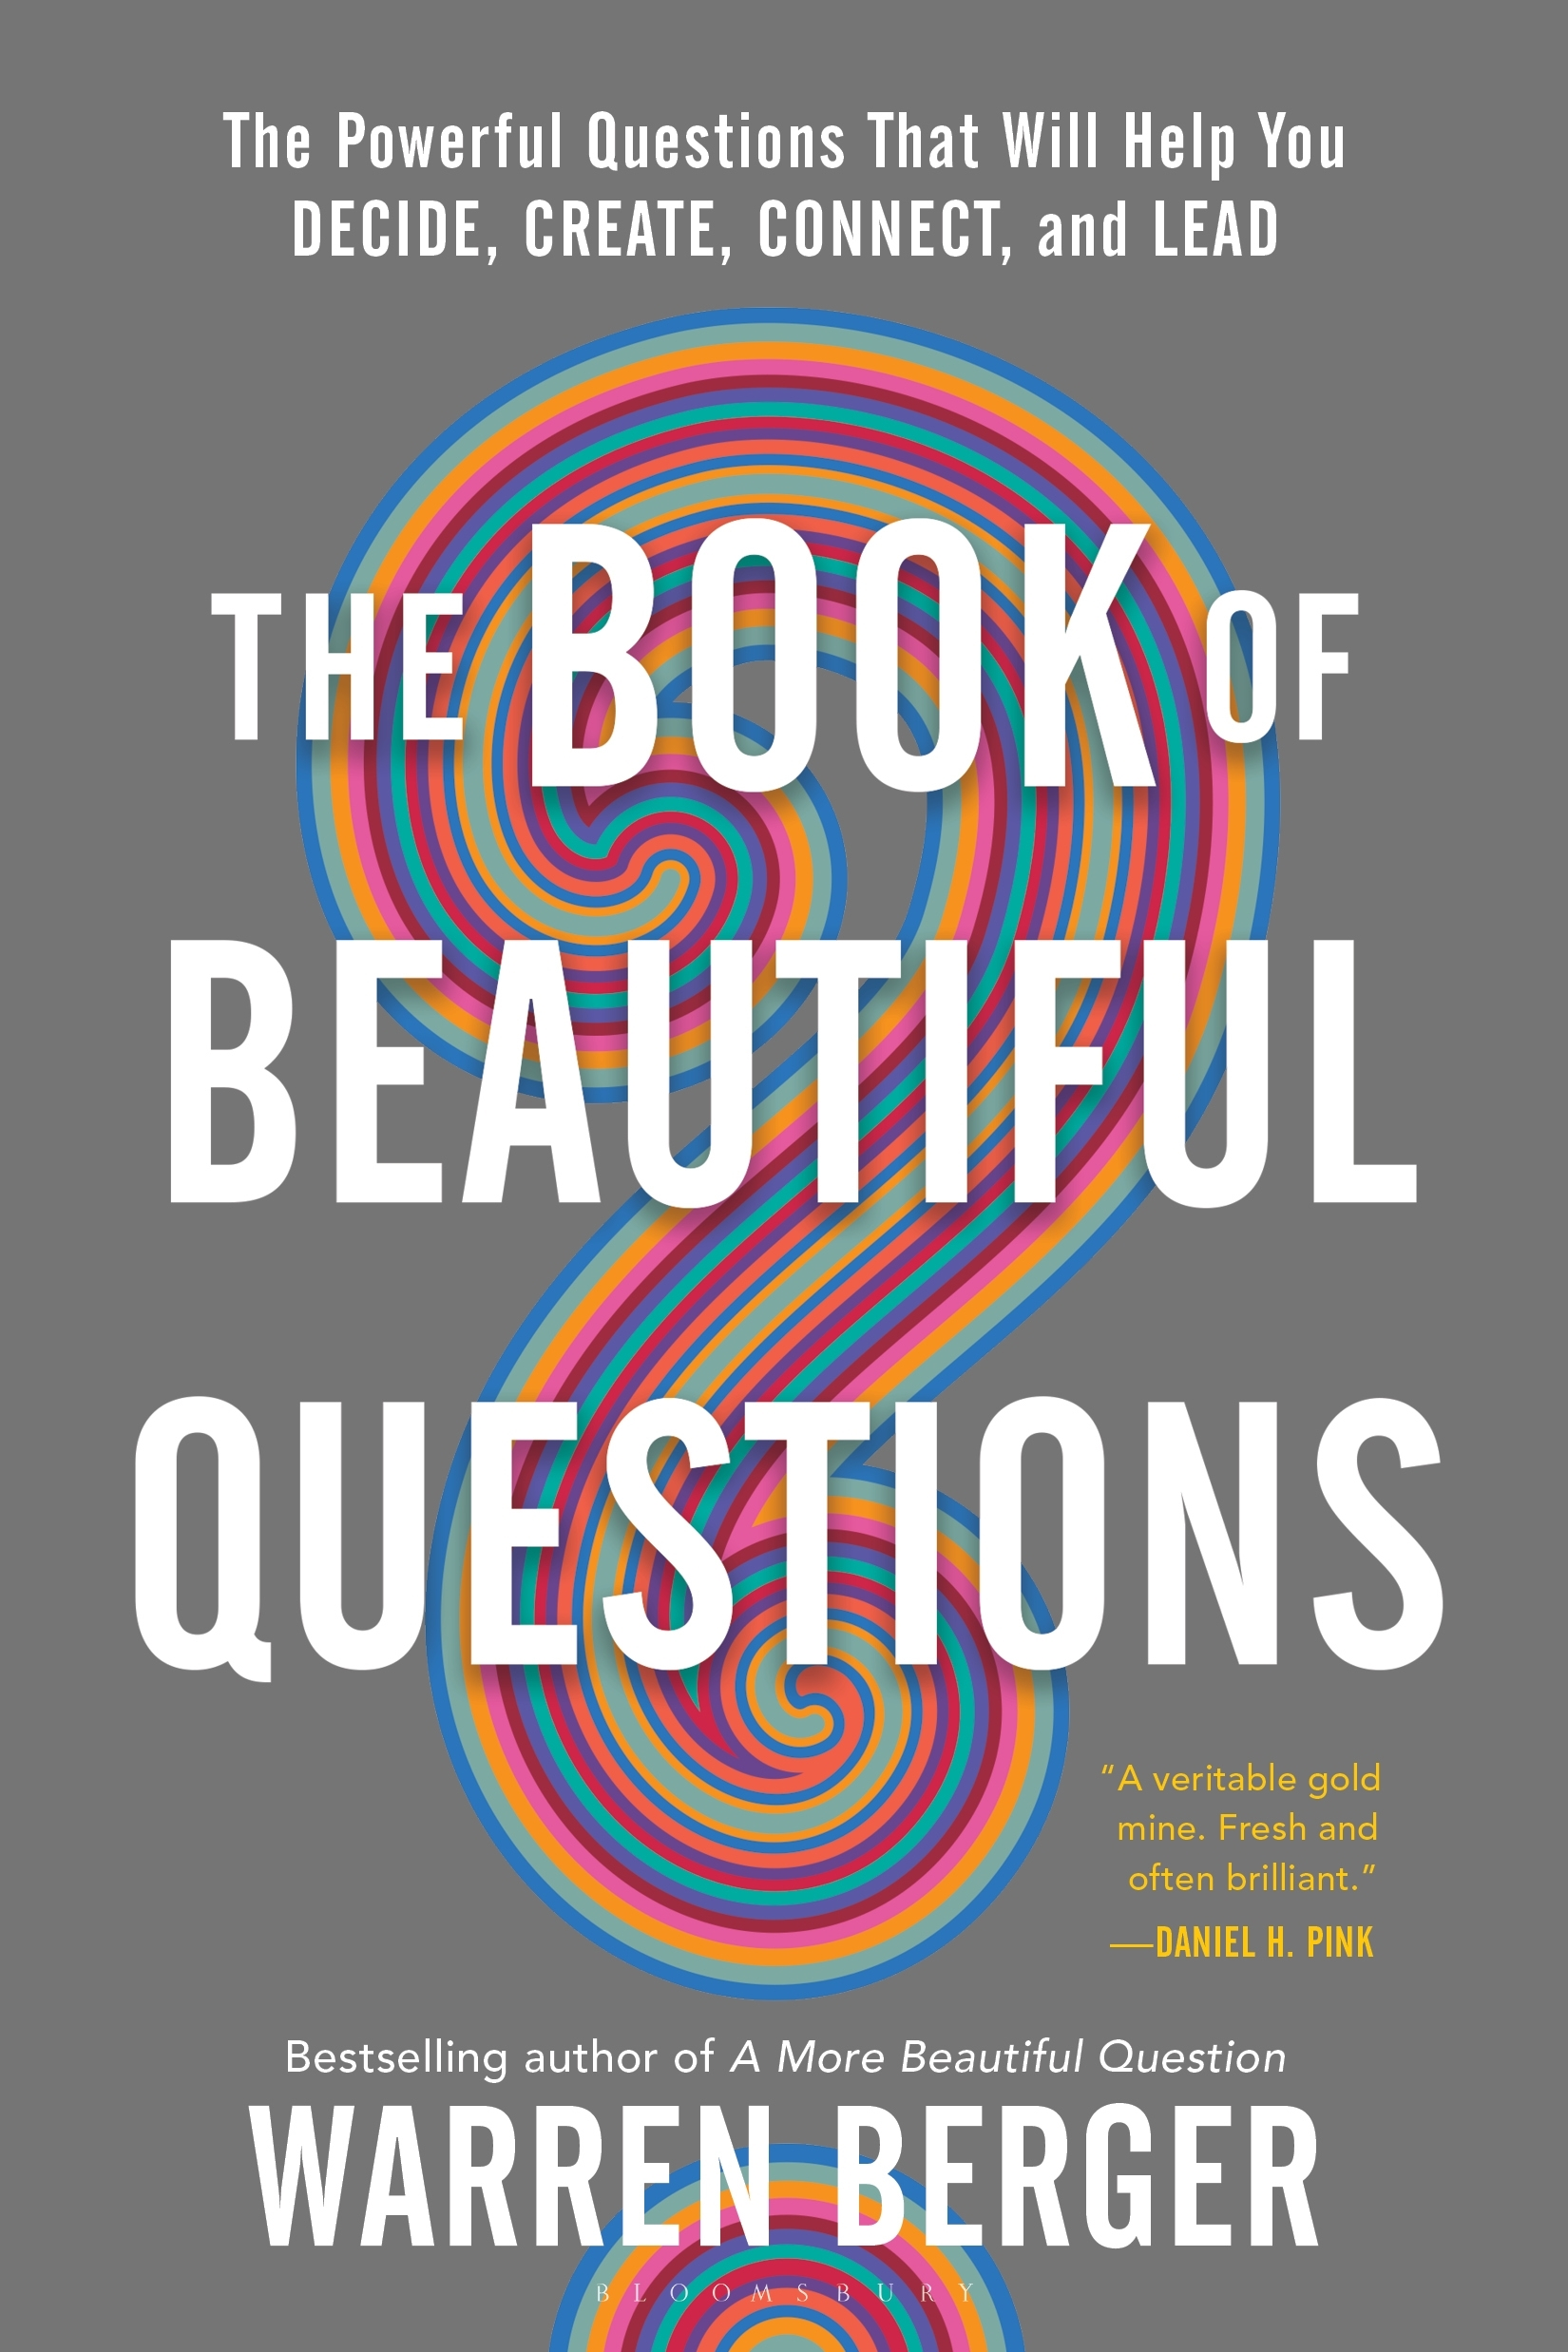 Book Of Beautiful Questions Copy